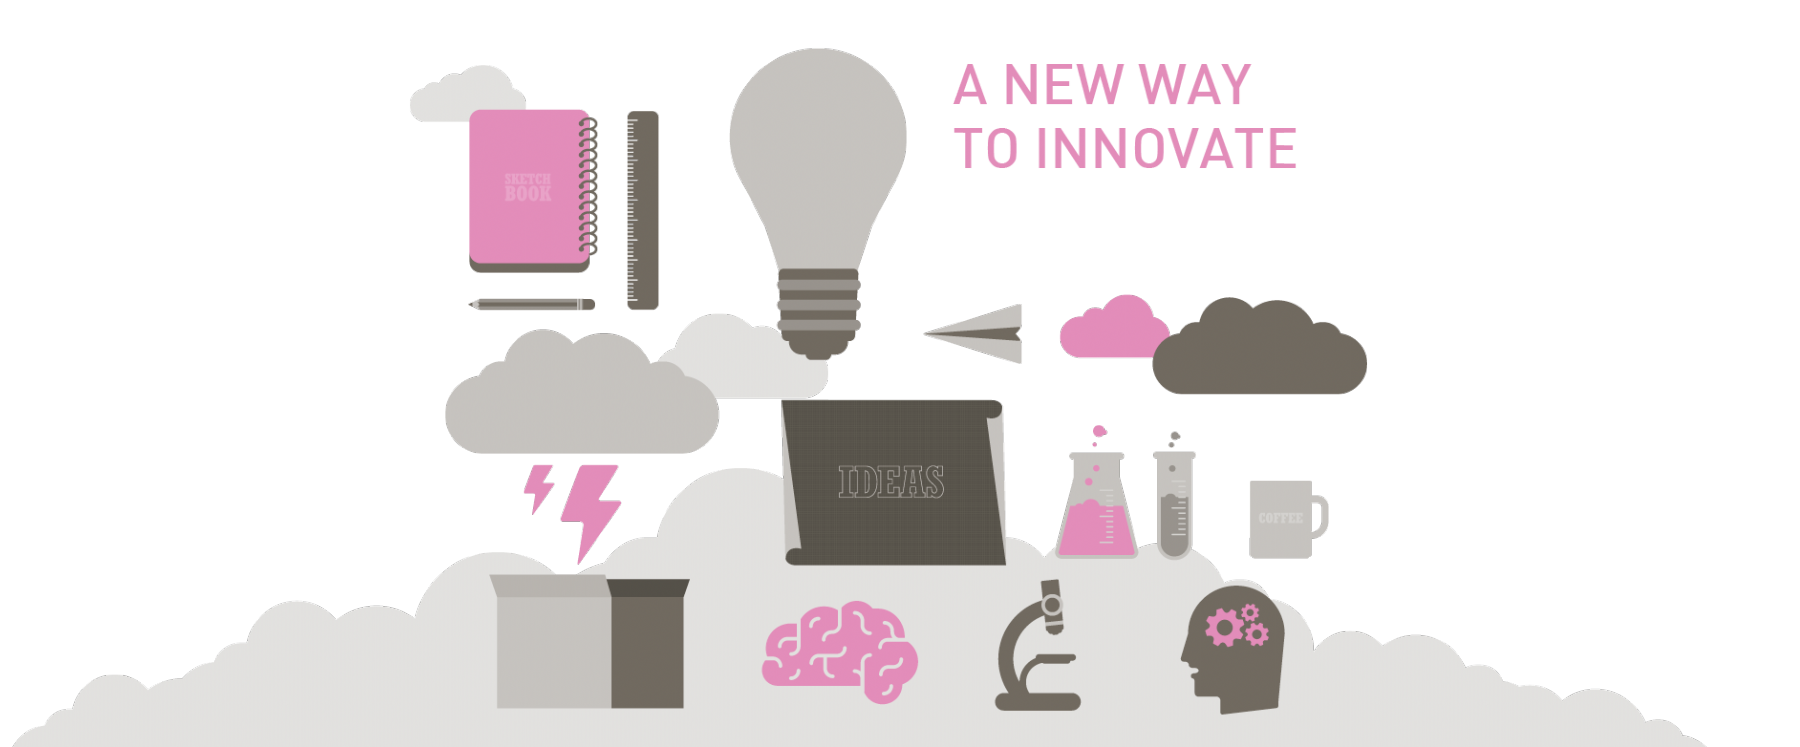 practical innovation, a new way to innovate